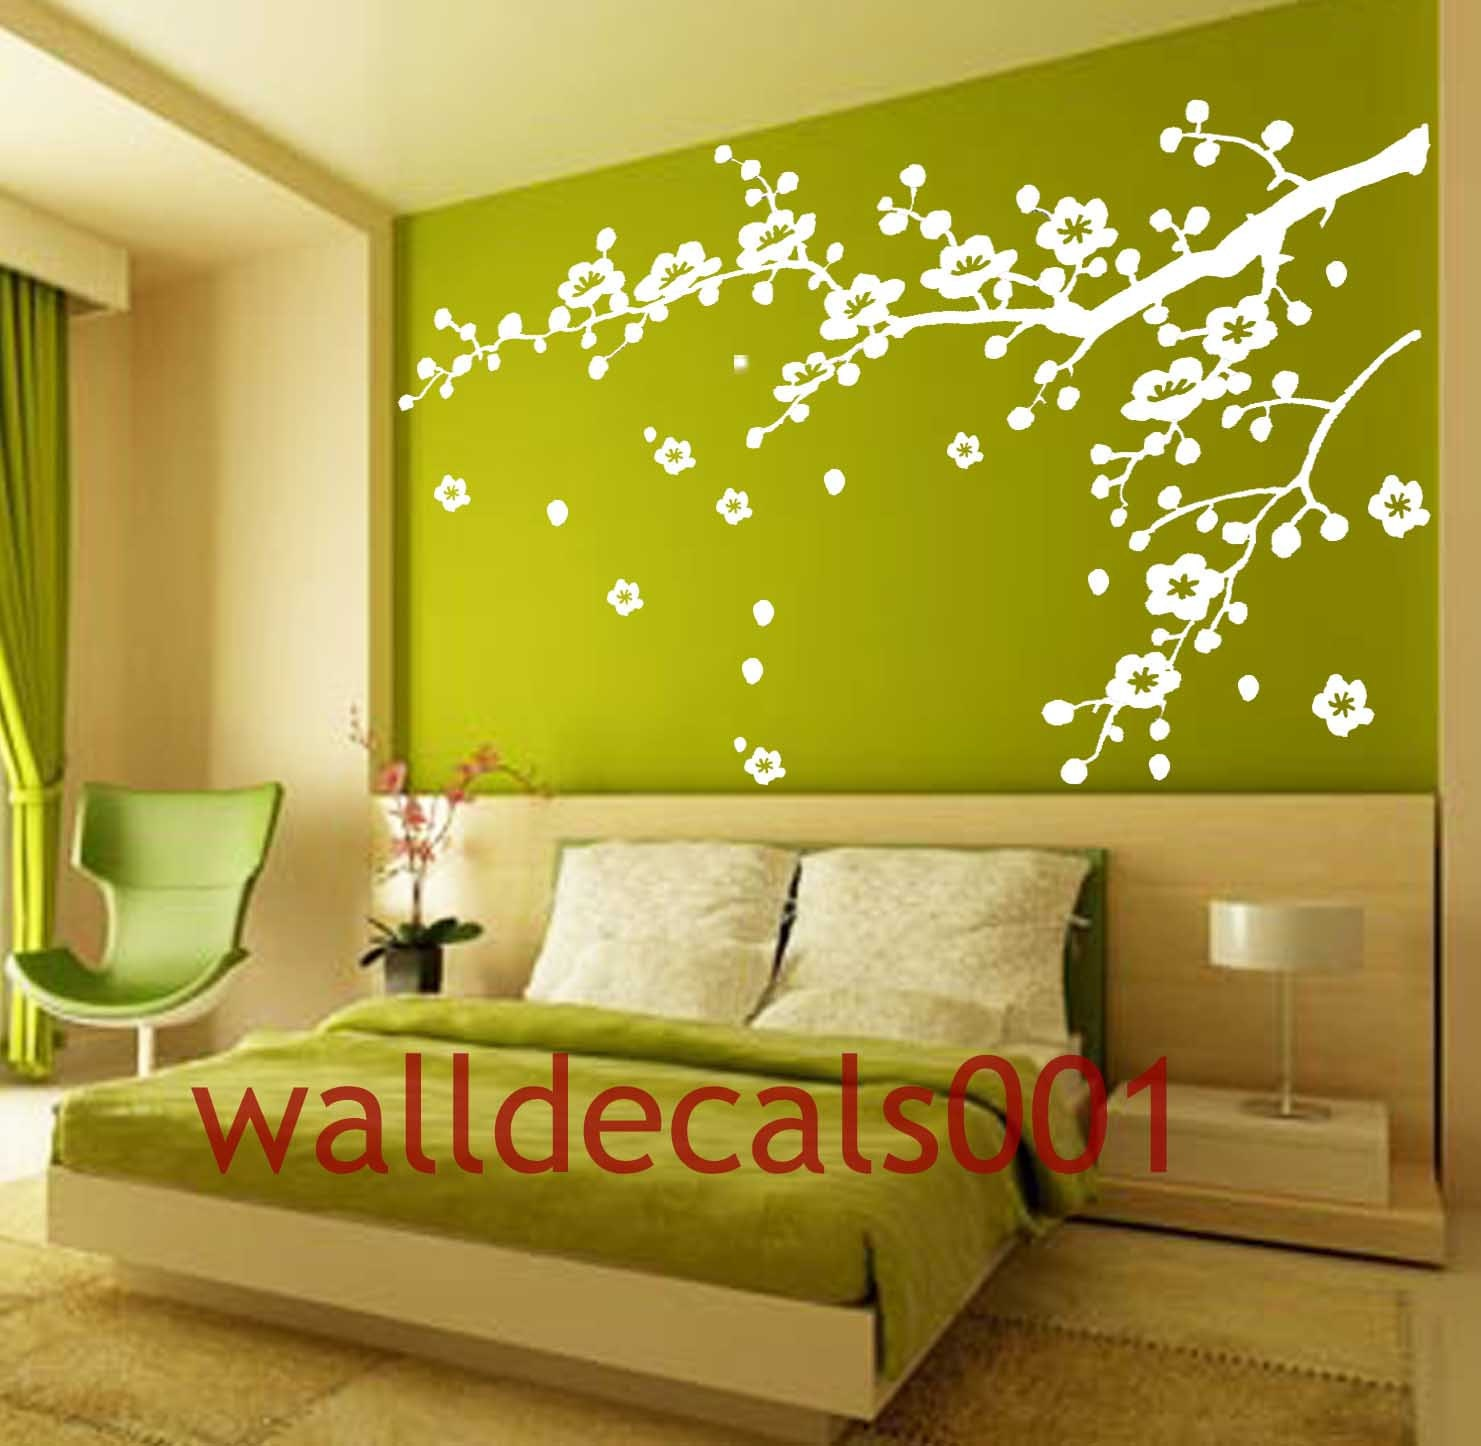 wall decor decals rumah minimalis